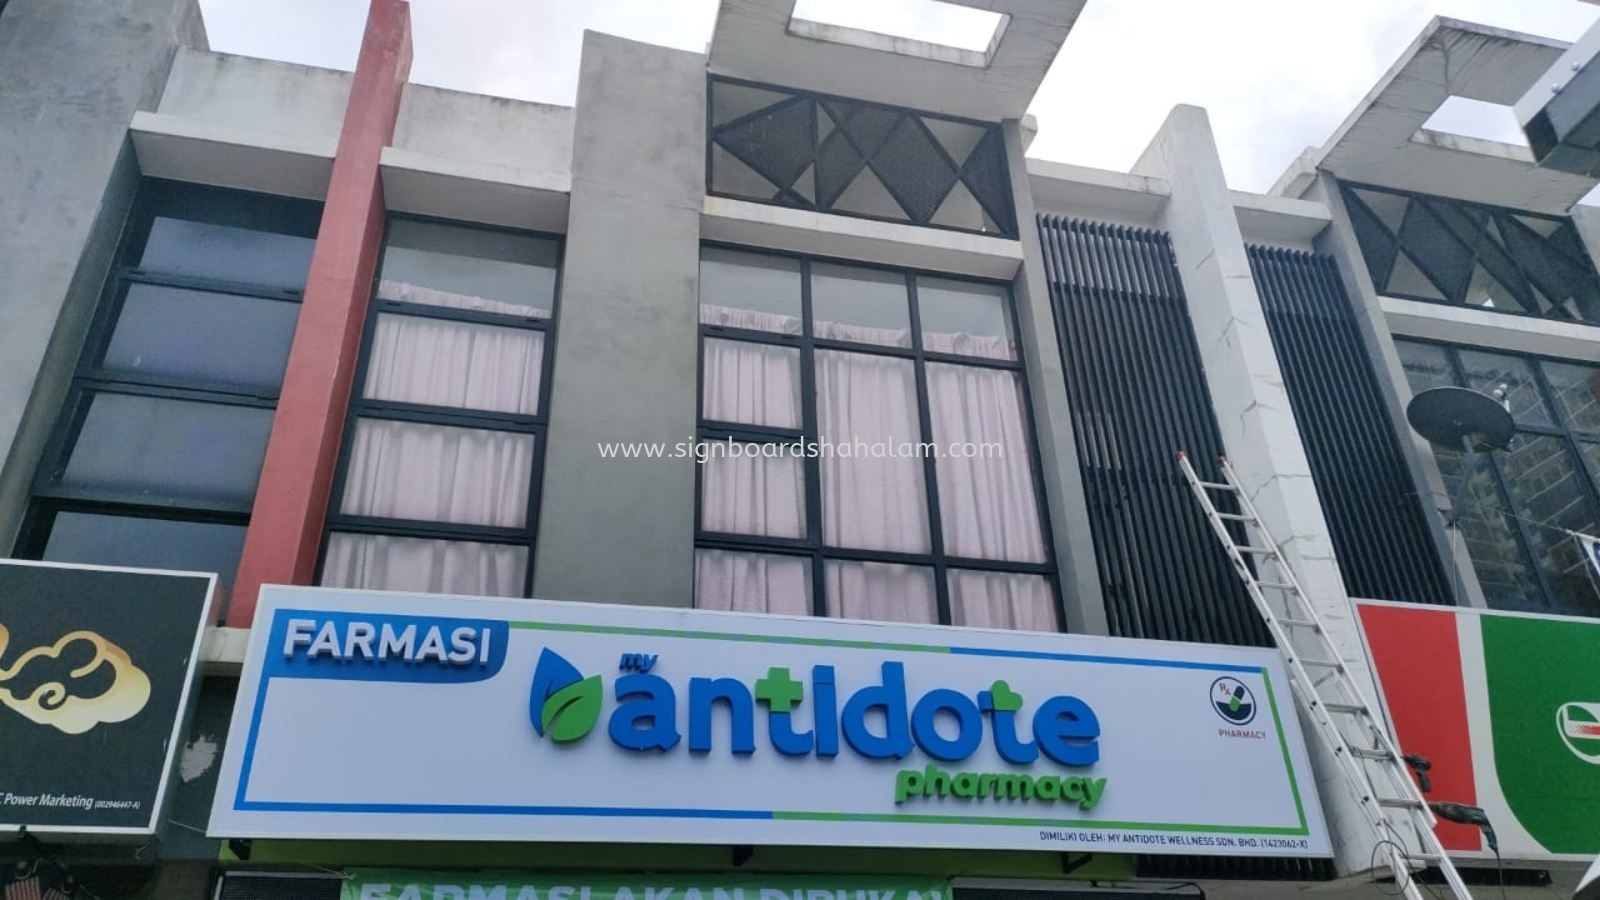 My Antidote Wellness Sdn Bhd KL -3D LED Box Up Signboard - Frontlit